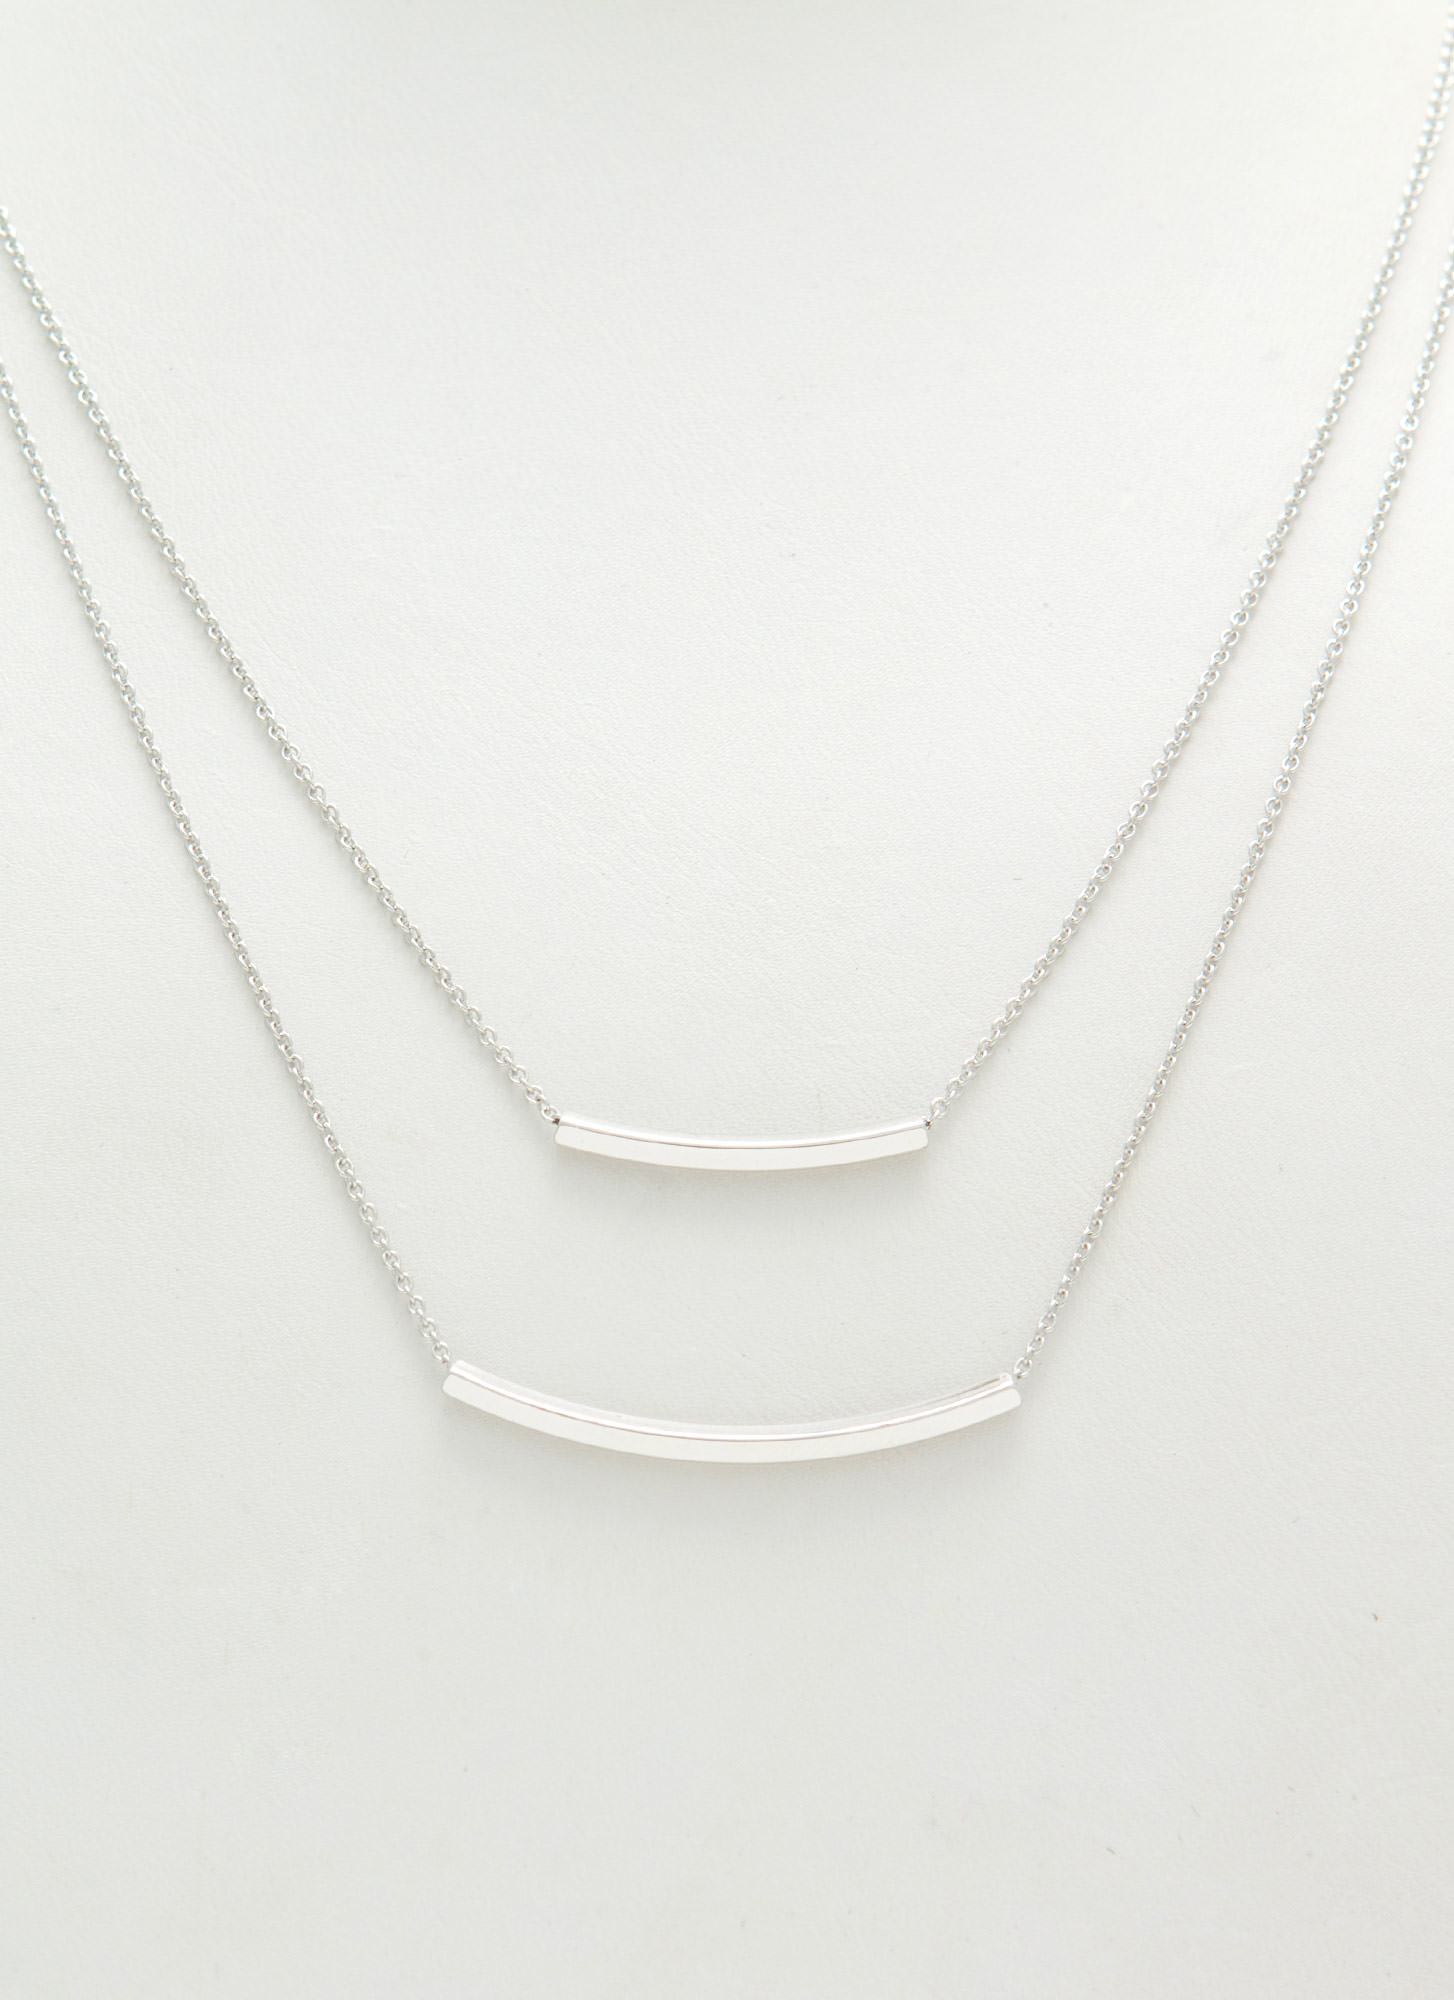 Metallic Double Bar Layered Necklace SILVER